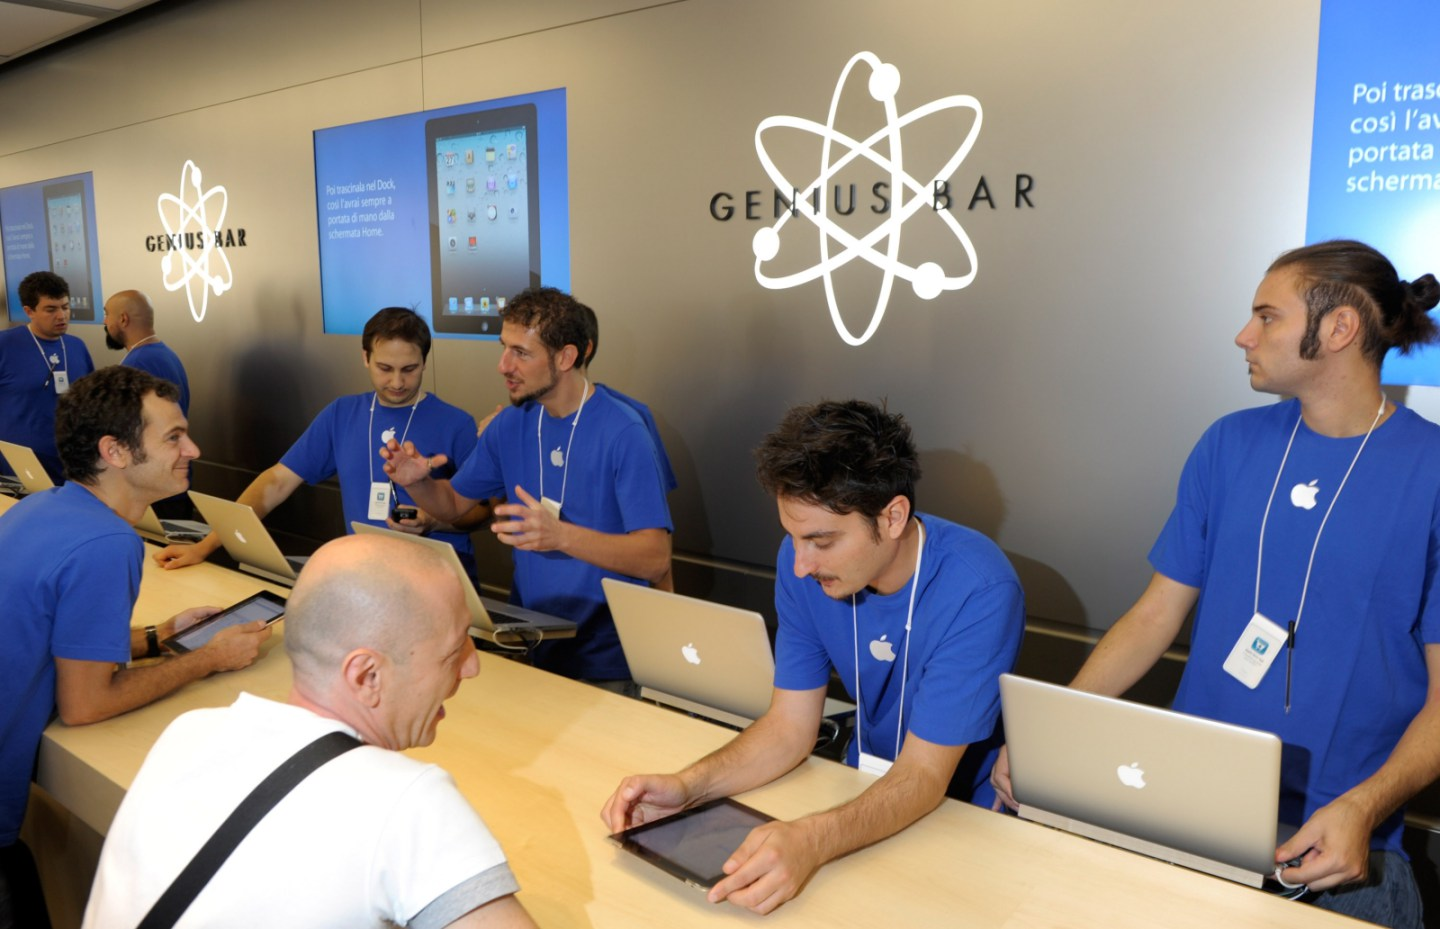 CBC: Apple Genius Bar is overpriced for the repairs to sell new devices